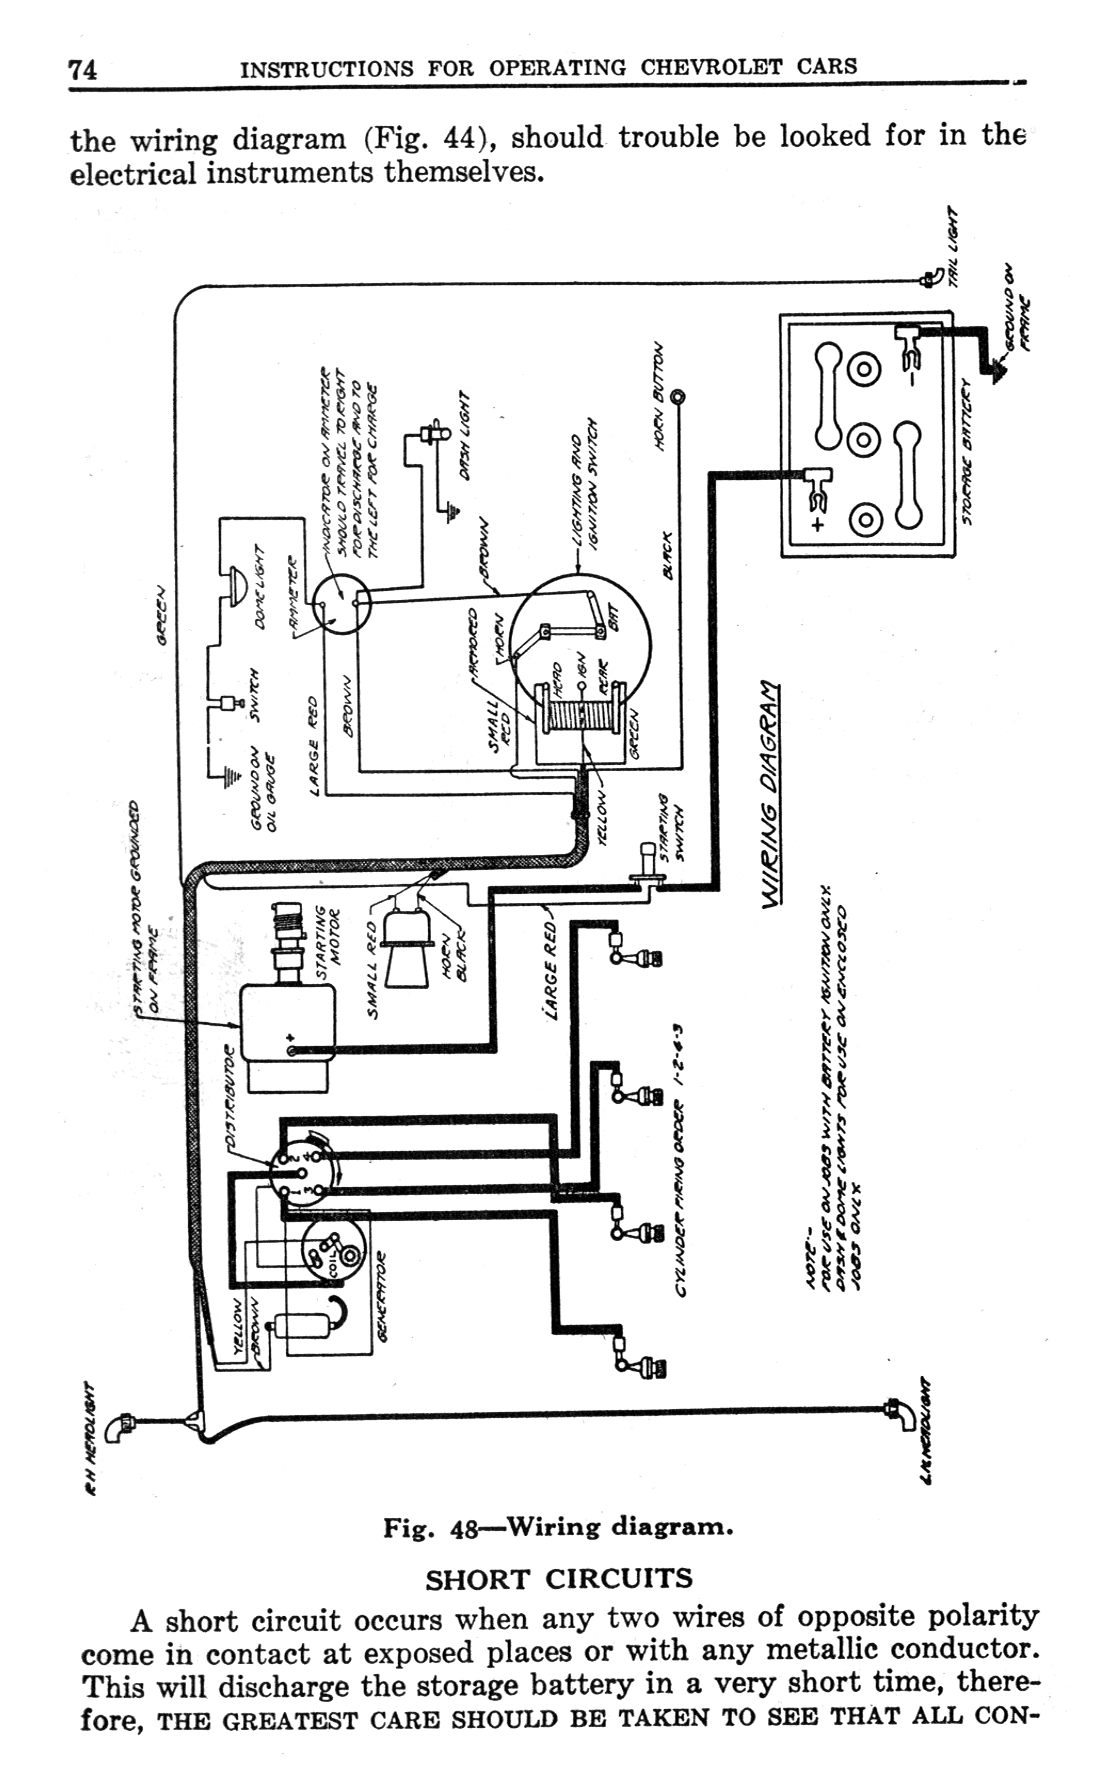 hight resolution of 1929 ford sedan wiring diagram get free image about fleetwing 1950 chevy wiring diagram fleetwing 1950 chevy wiring diagram